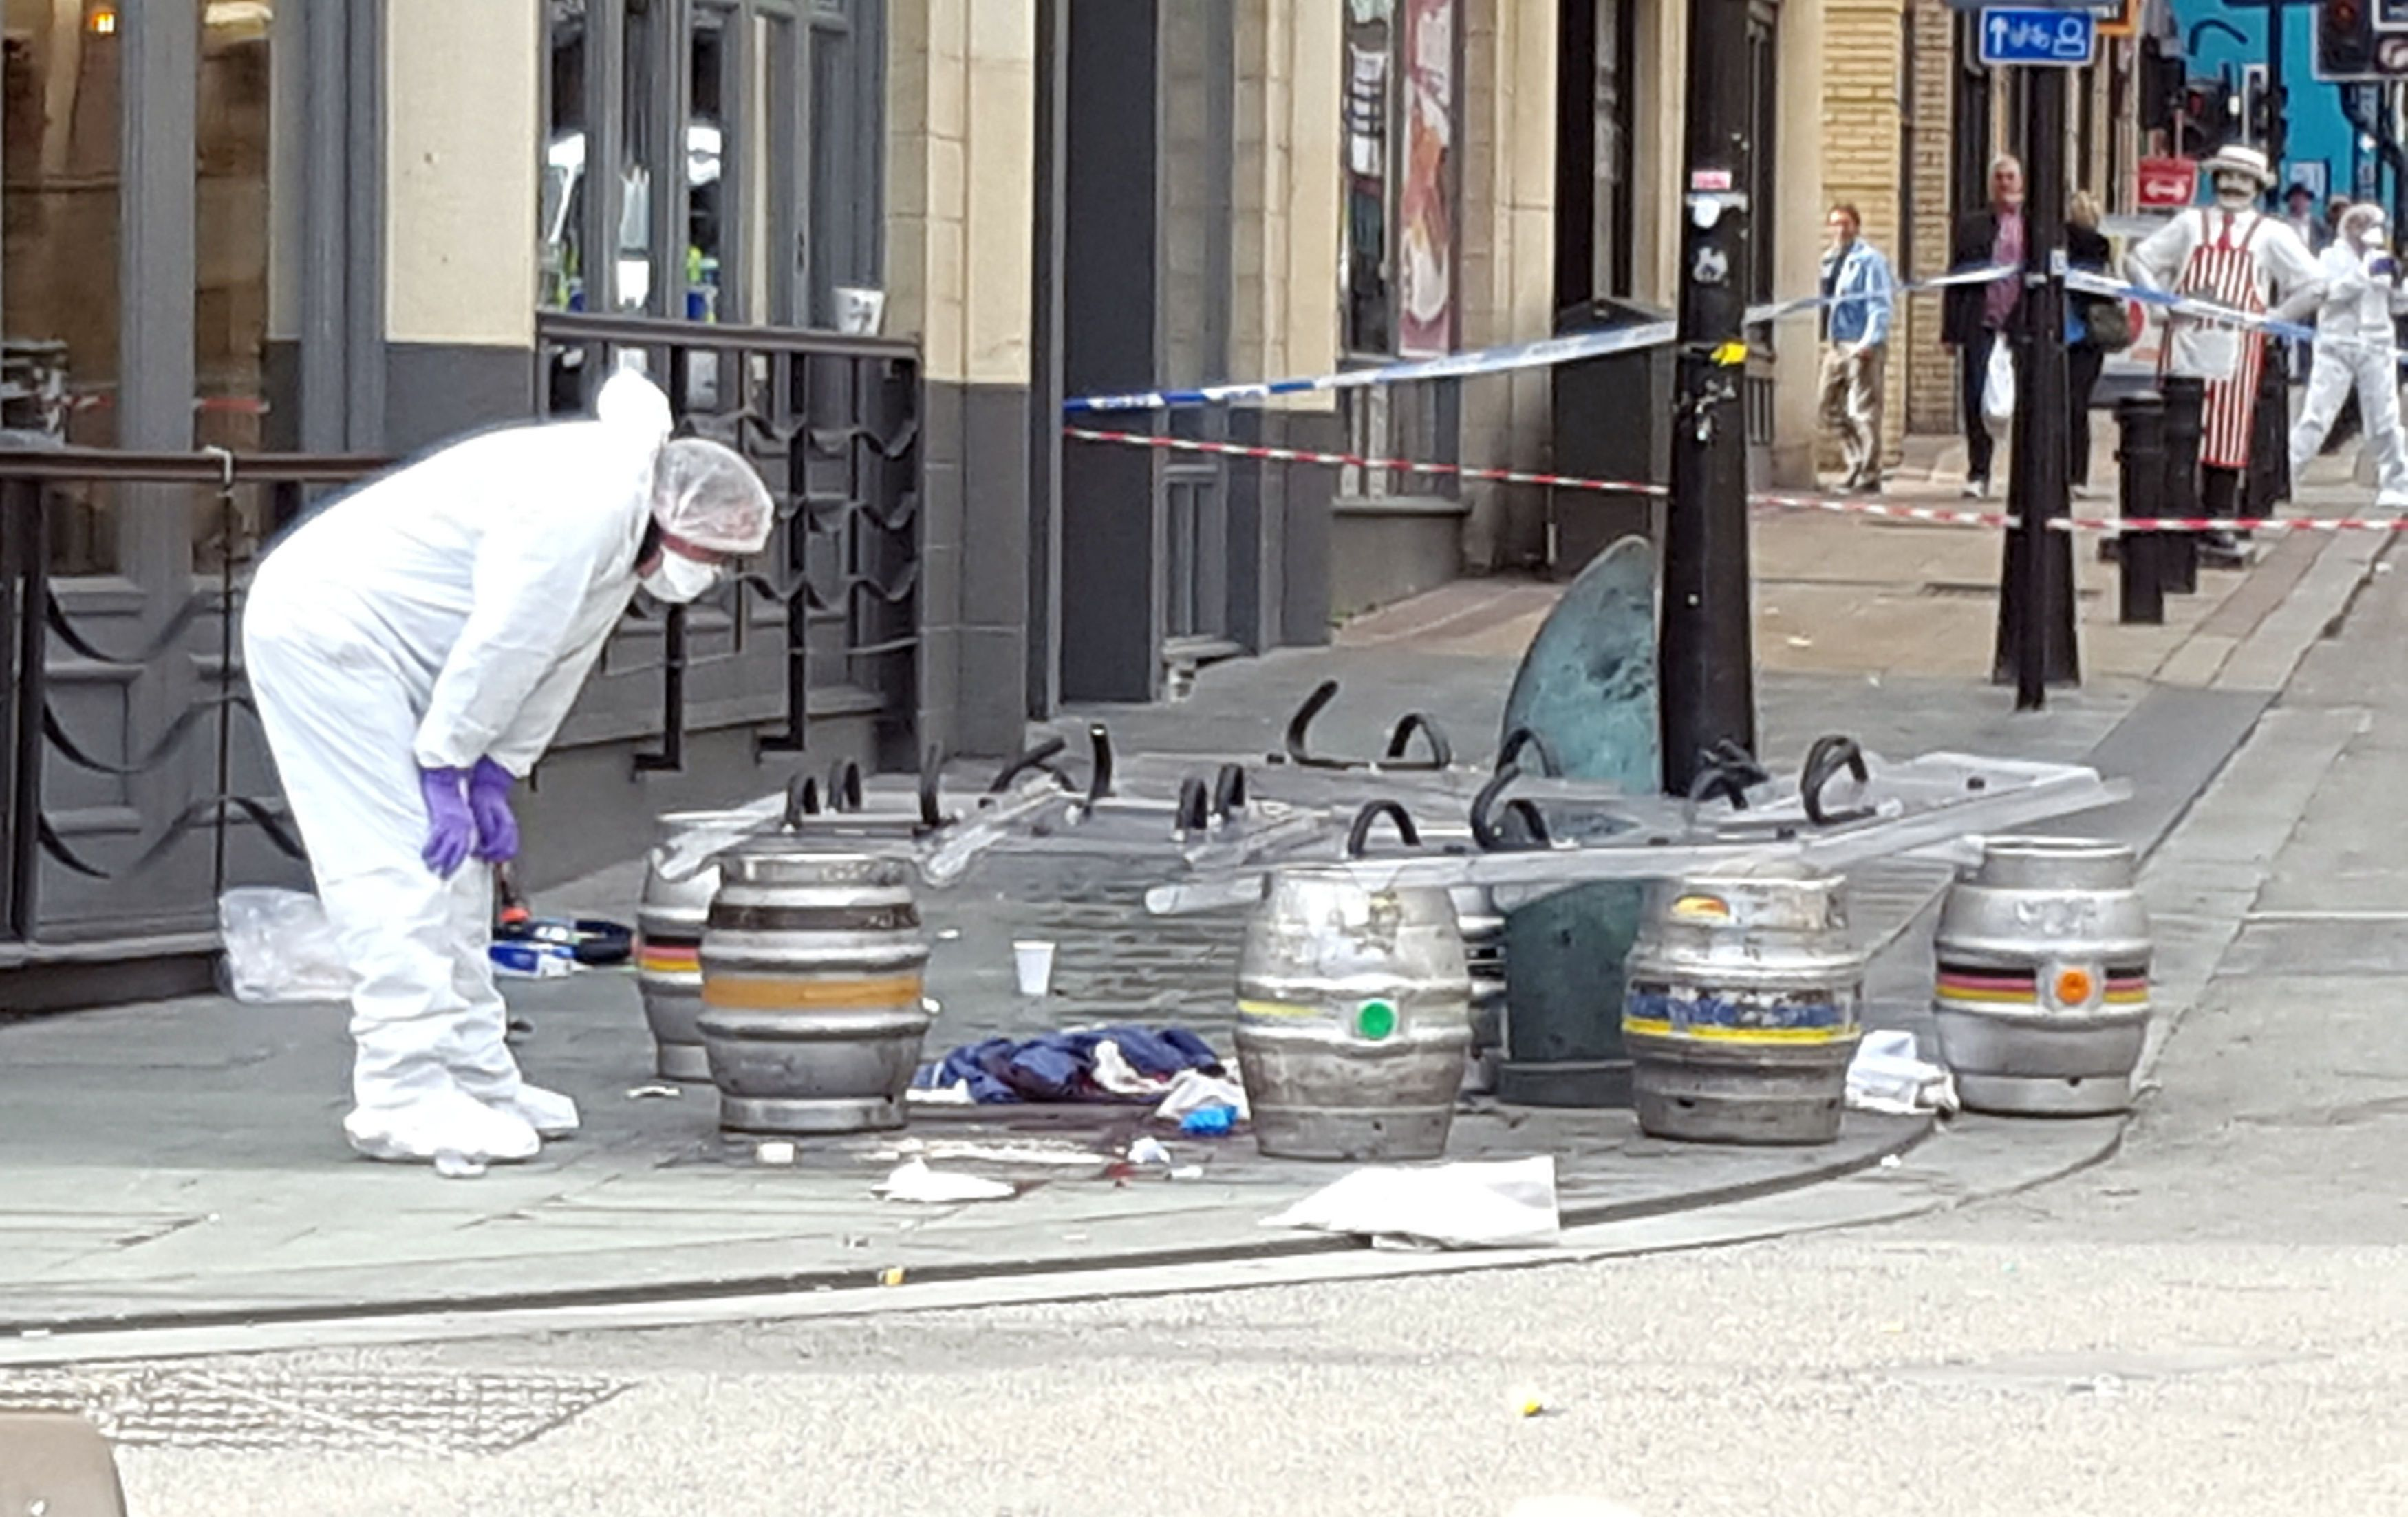 Sheffield stabbings: Five people knifed in city centre attack